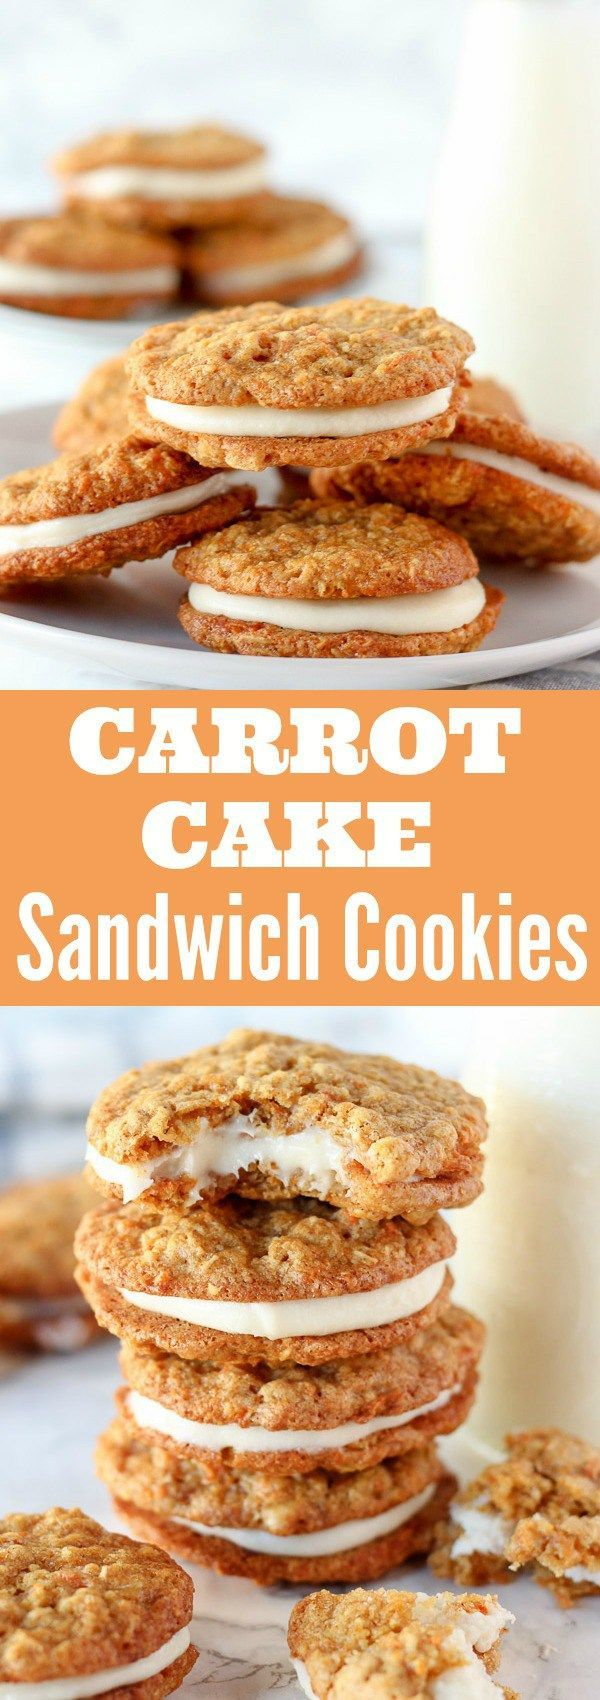 Carrot Cake Sandwich Cookies - Tender oatmeal cookies filled with cinnamon, grated carrots, coconut and walnuts, filled with cream cheese frosting. | https://lomejordelaweb.es/